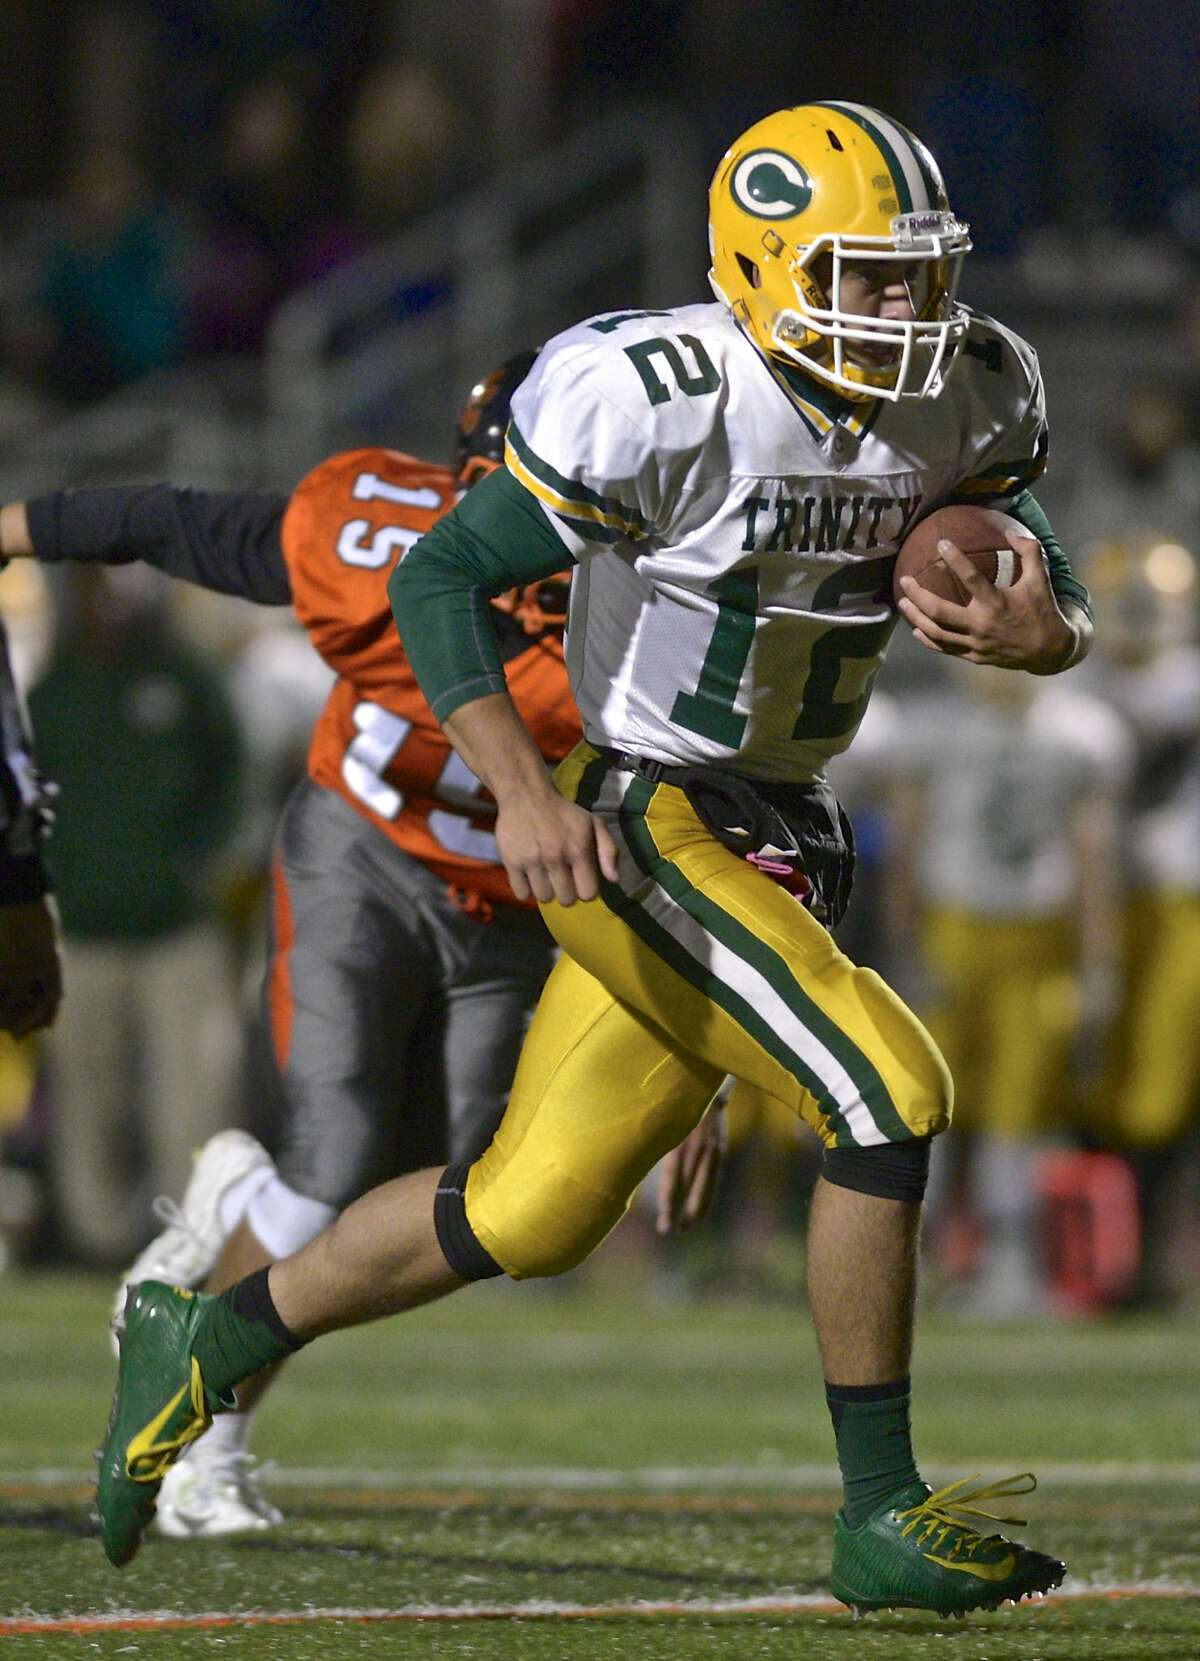 Three of the Crusaders' first four games have been decided by five or fewer points. In addition to defeating Ridgefield 26-21 on Friday, the Crusaders fell 42-38 to Greenwich on Opening Day and edged Norwalk 22-20 the following week. Even Week 3's clash with Trumbull - a 32-20 win - was close. Trinity knows it can win close, grind-it-out games, something that could bode well as the games get bigger.